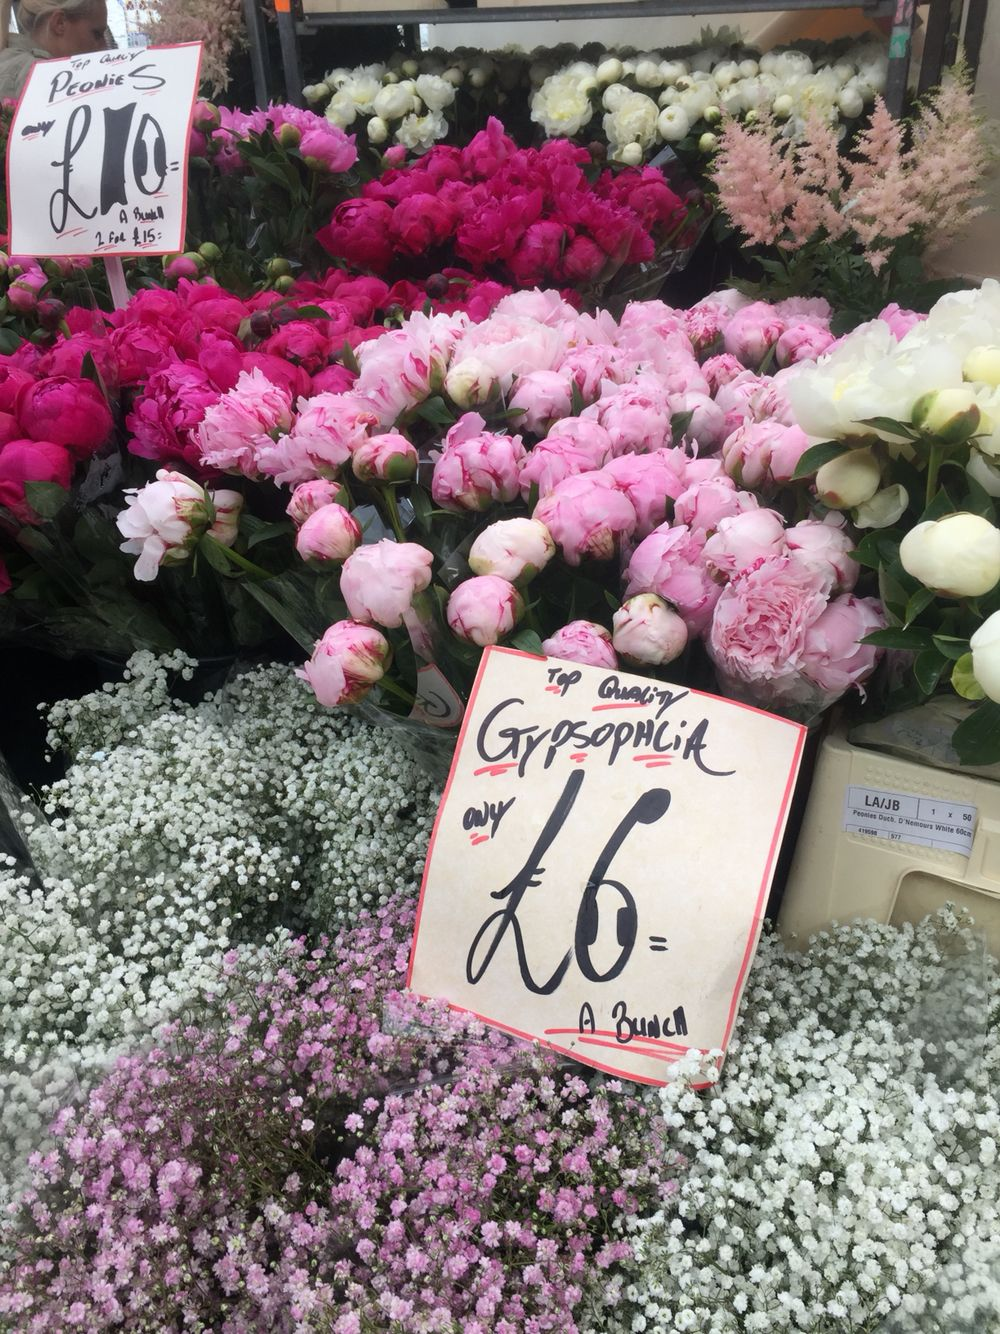 Peonies And Baby S Breath In Columbia Road Flower Market Columbia Road Flower Market Flower Market Flowers